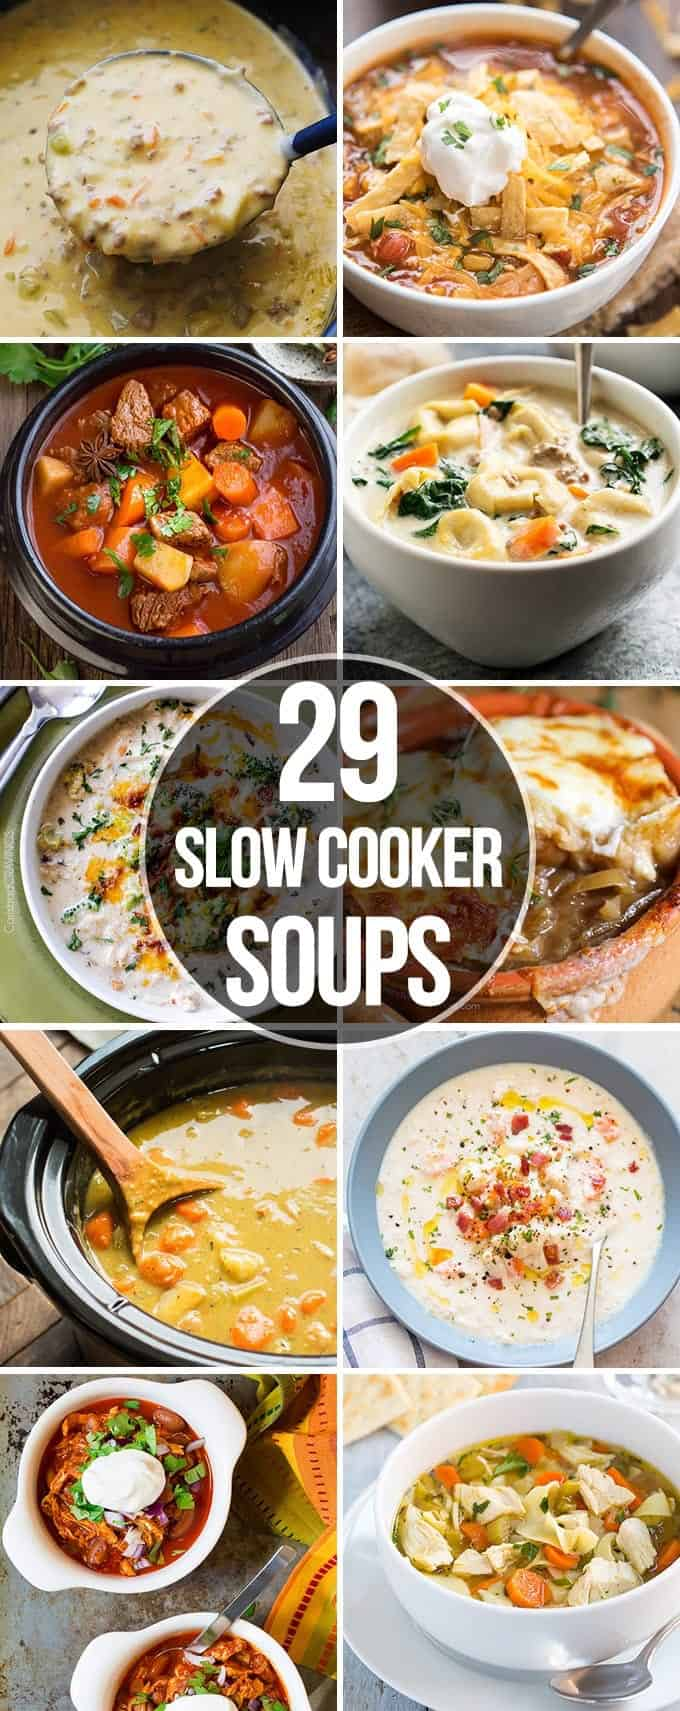 29 Slow Cooker Soups